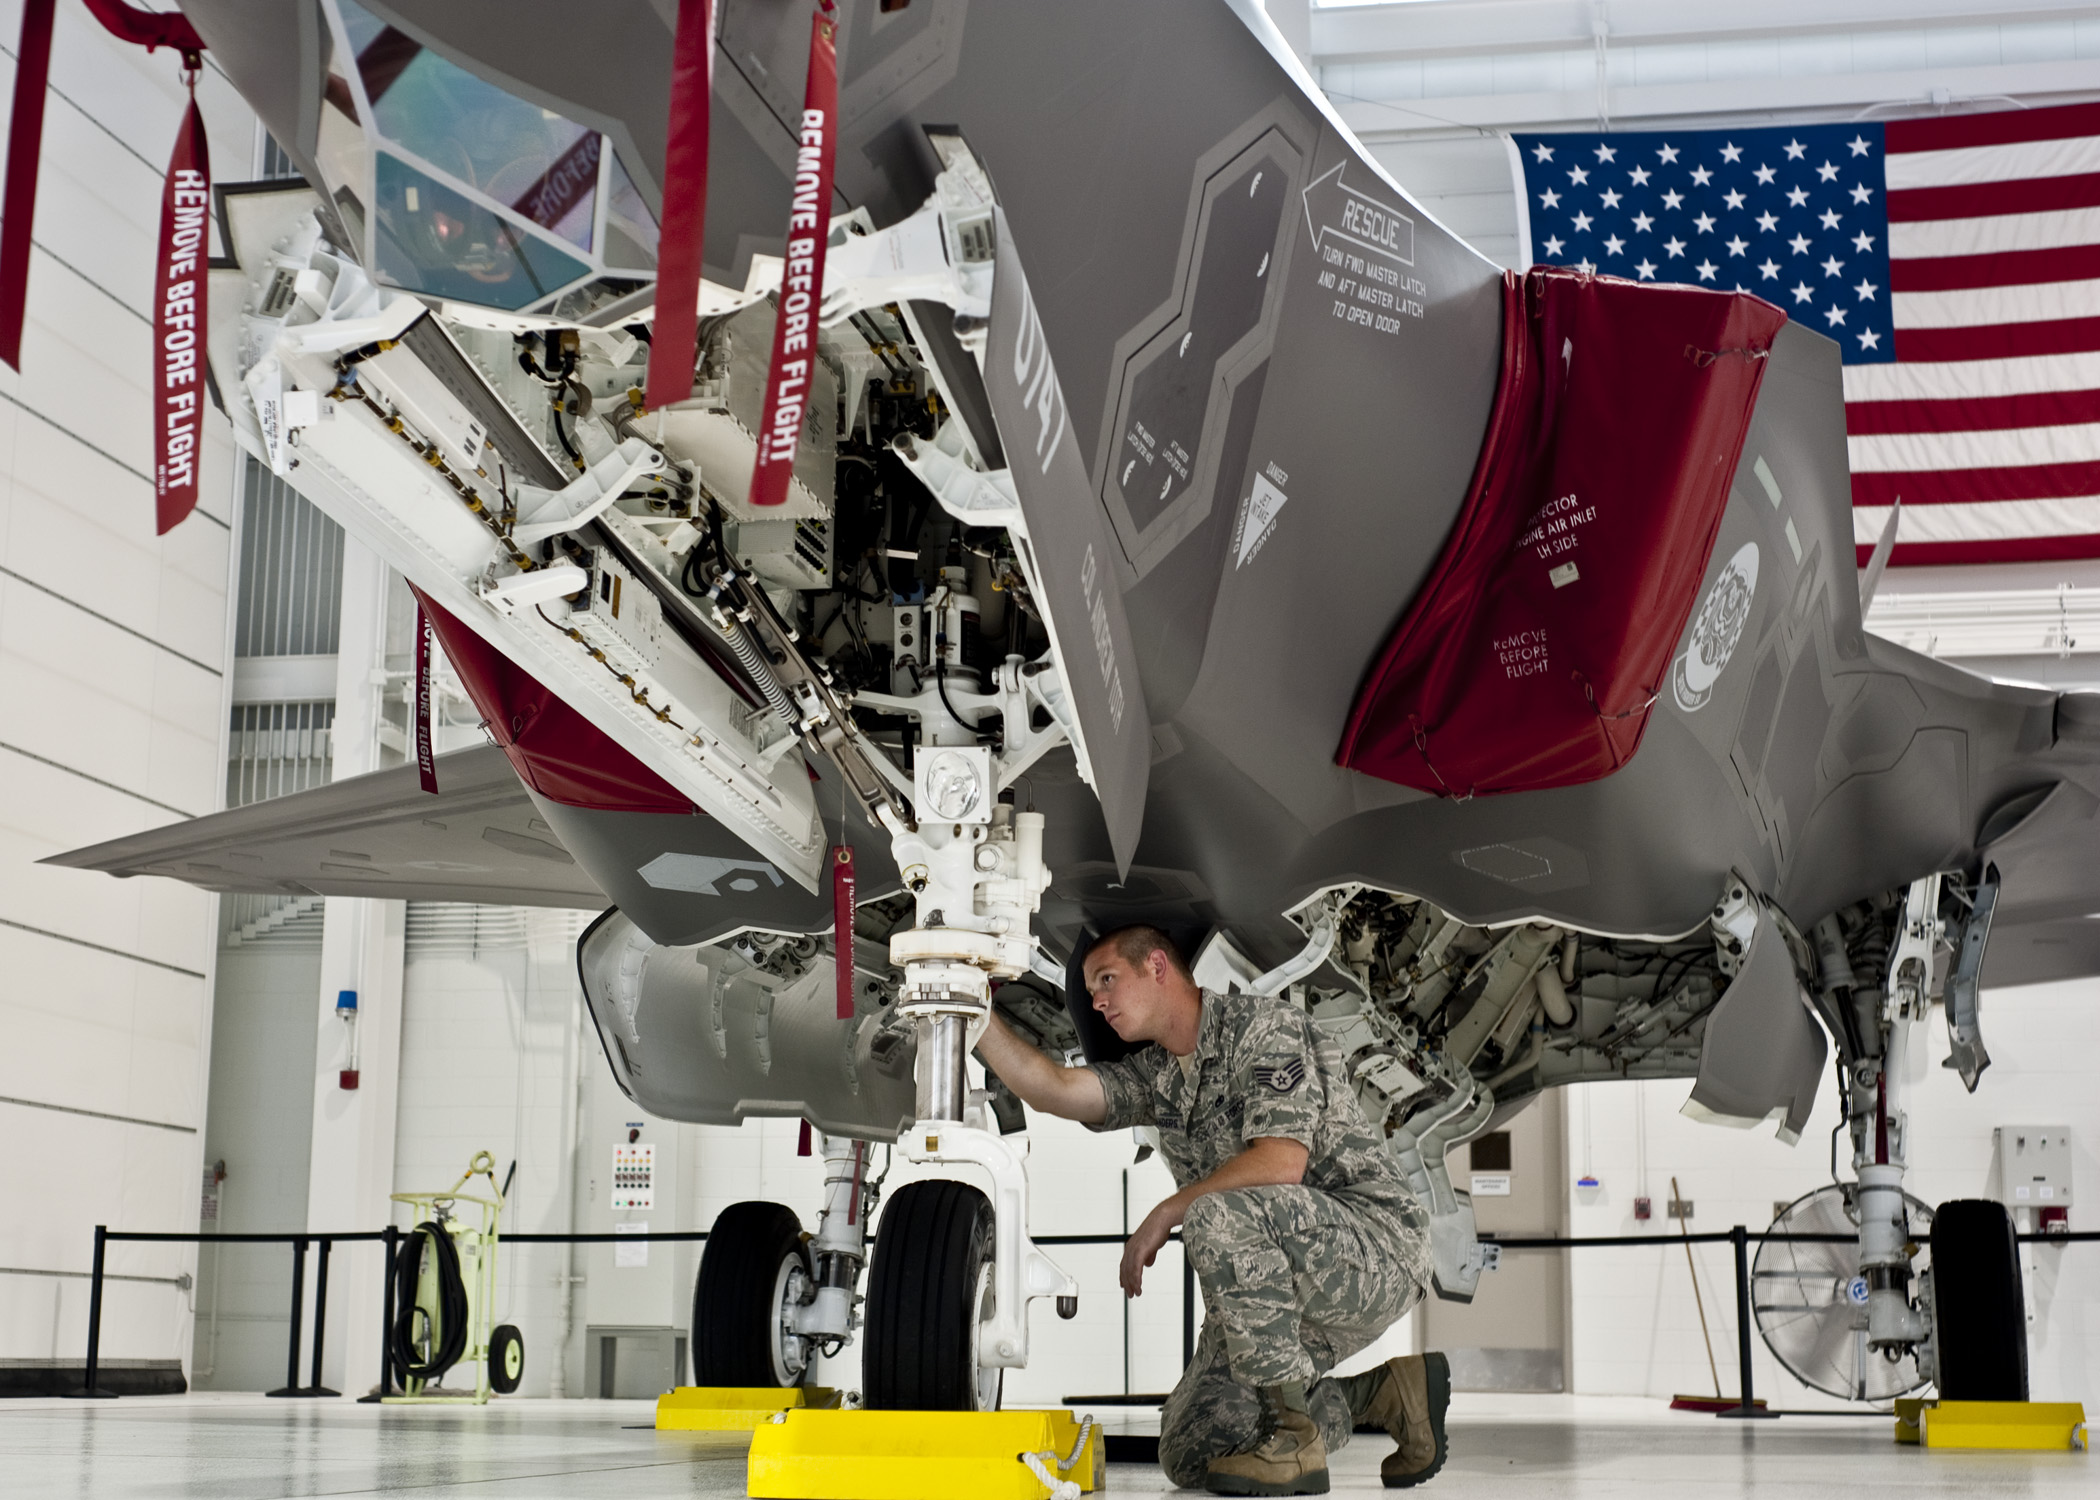 U.S. Air Force Staff Sgt. Michael Sanders, of the 58th Aircraft Maintenance Squadron checks out the first F-35 Lightning II joint strike fighter at Eglin Air Force Base, Fla. (Chrissy Cuttita/U.S. Air Force)